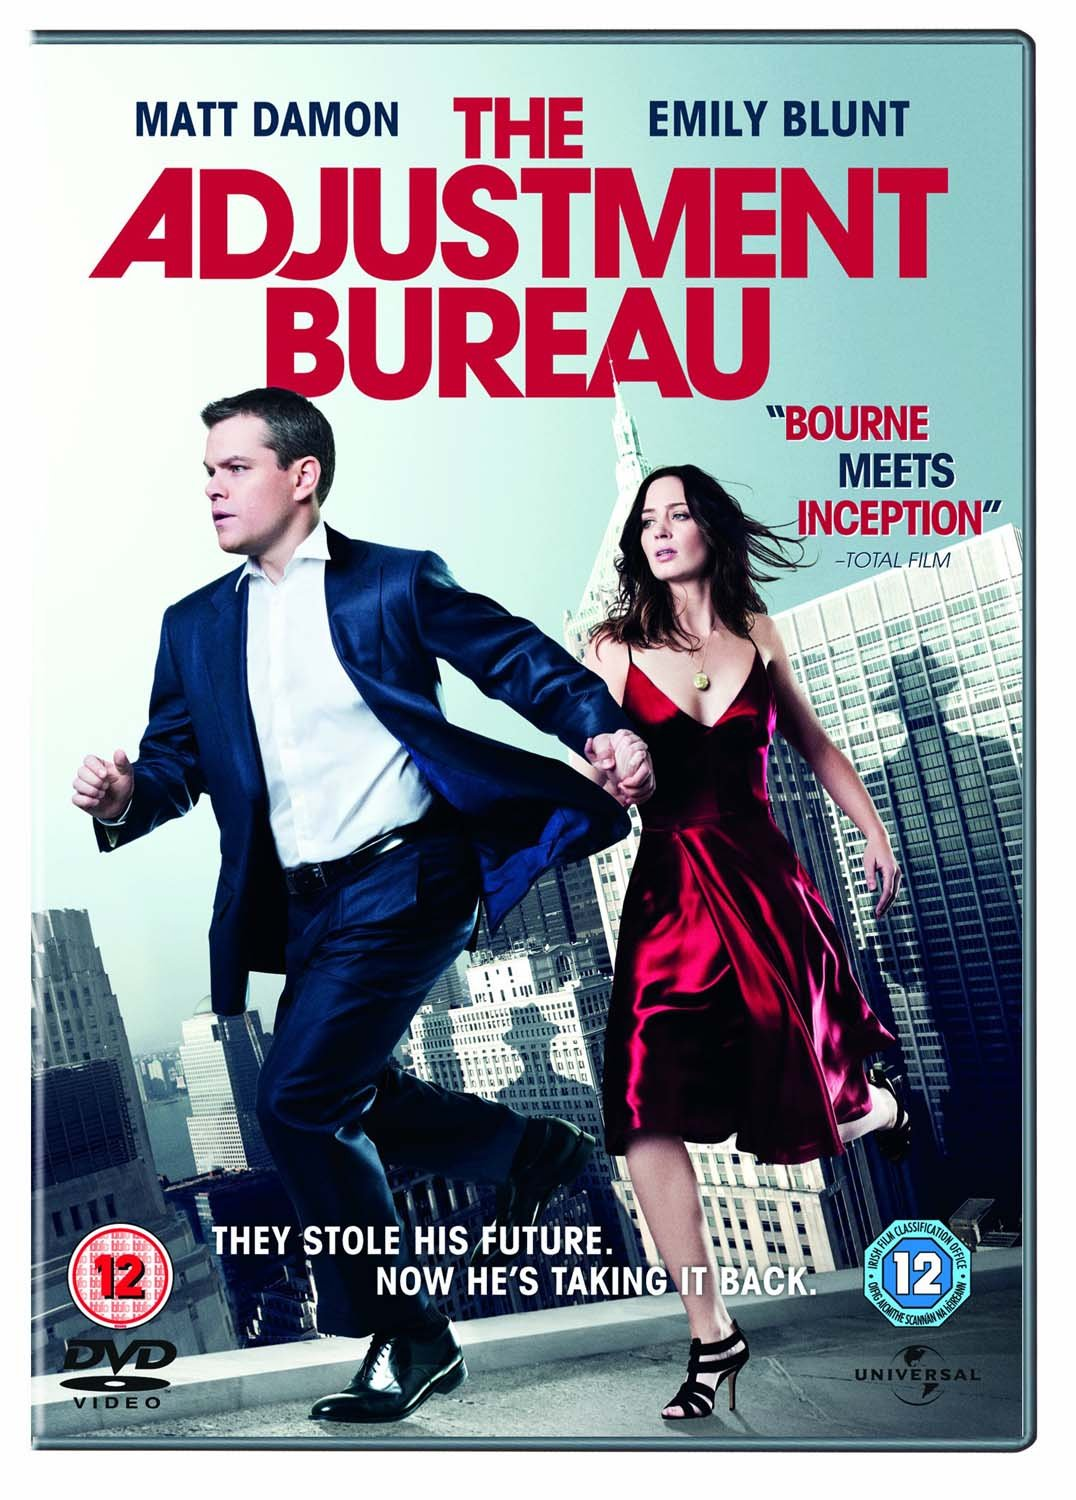 Amazon.com: The Adjustment Bureau [DVD] [2011]: Matt Damon, Emily ...